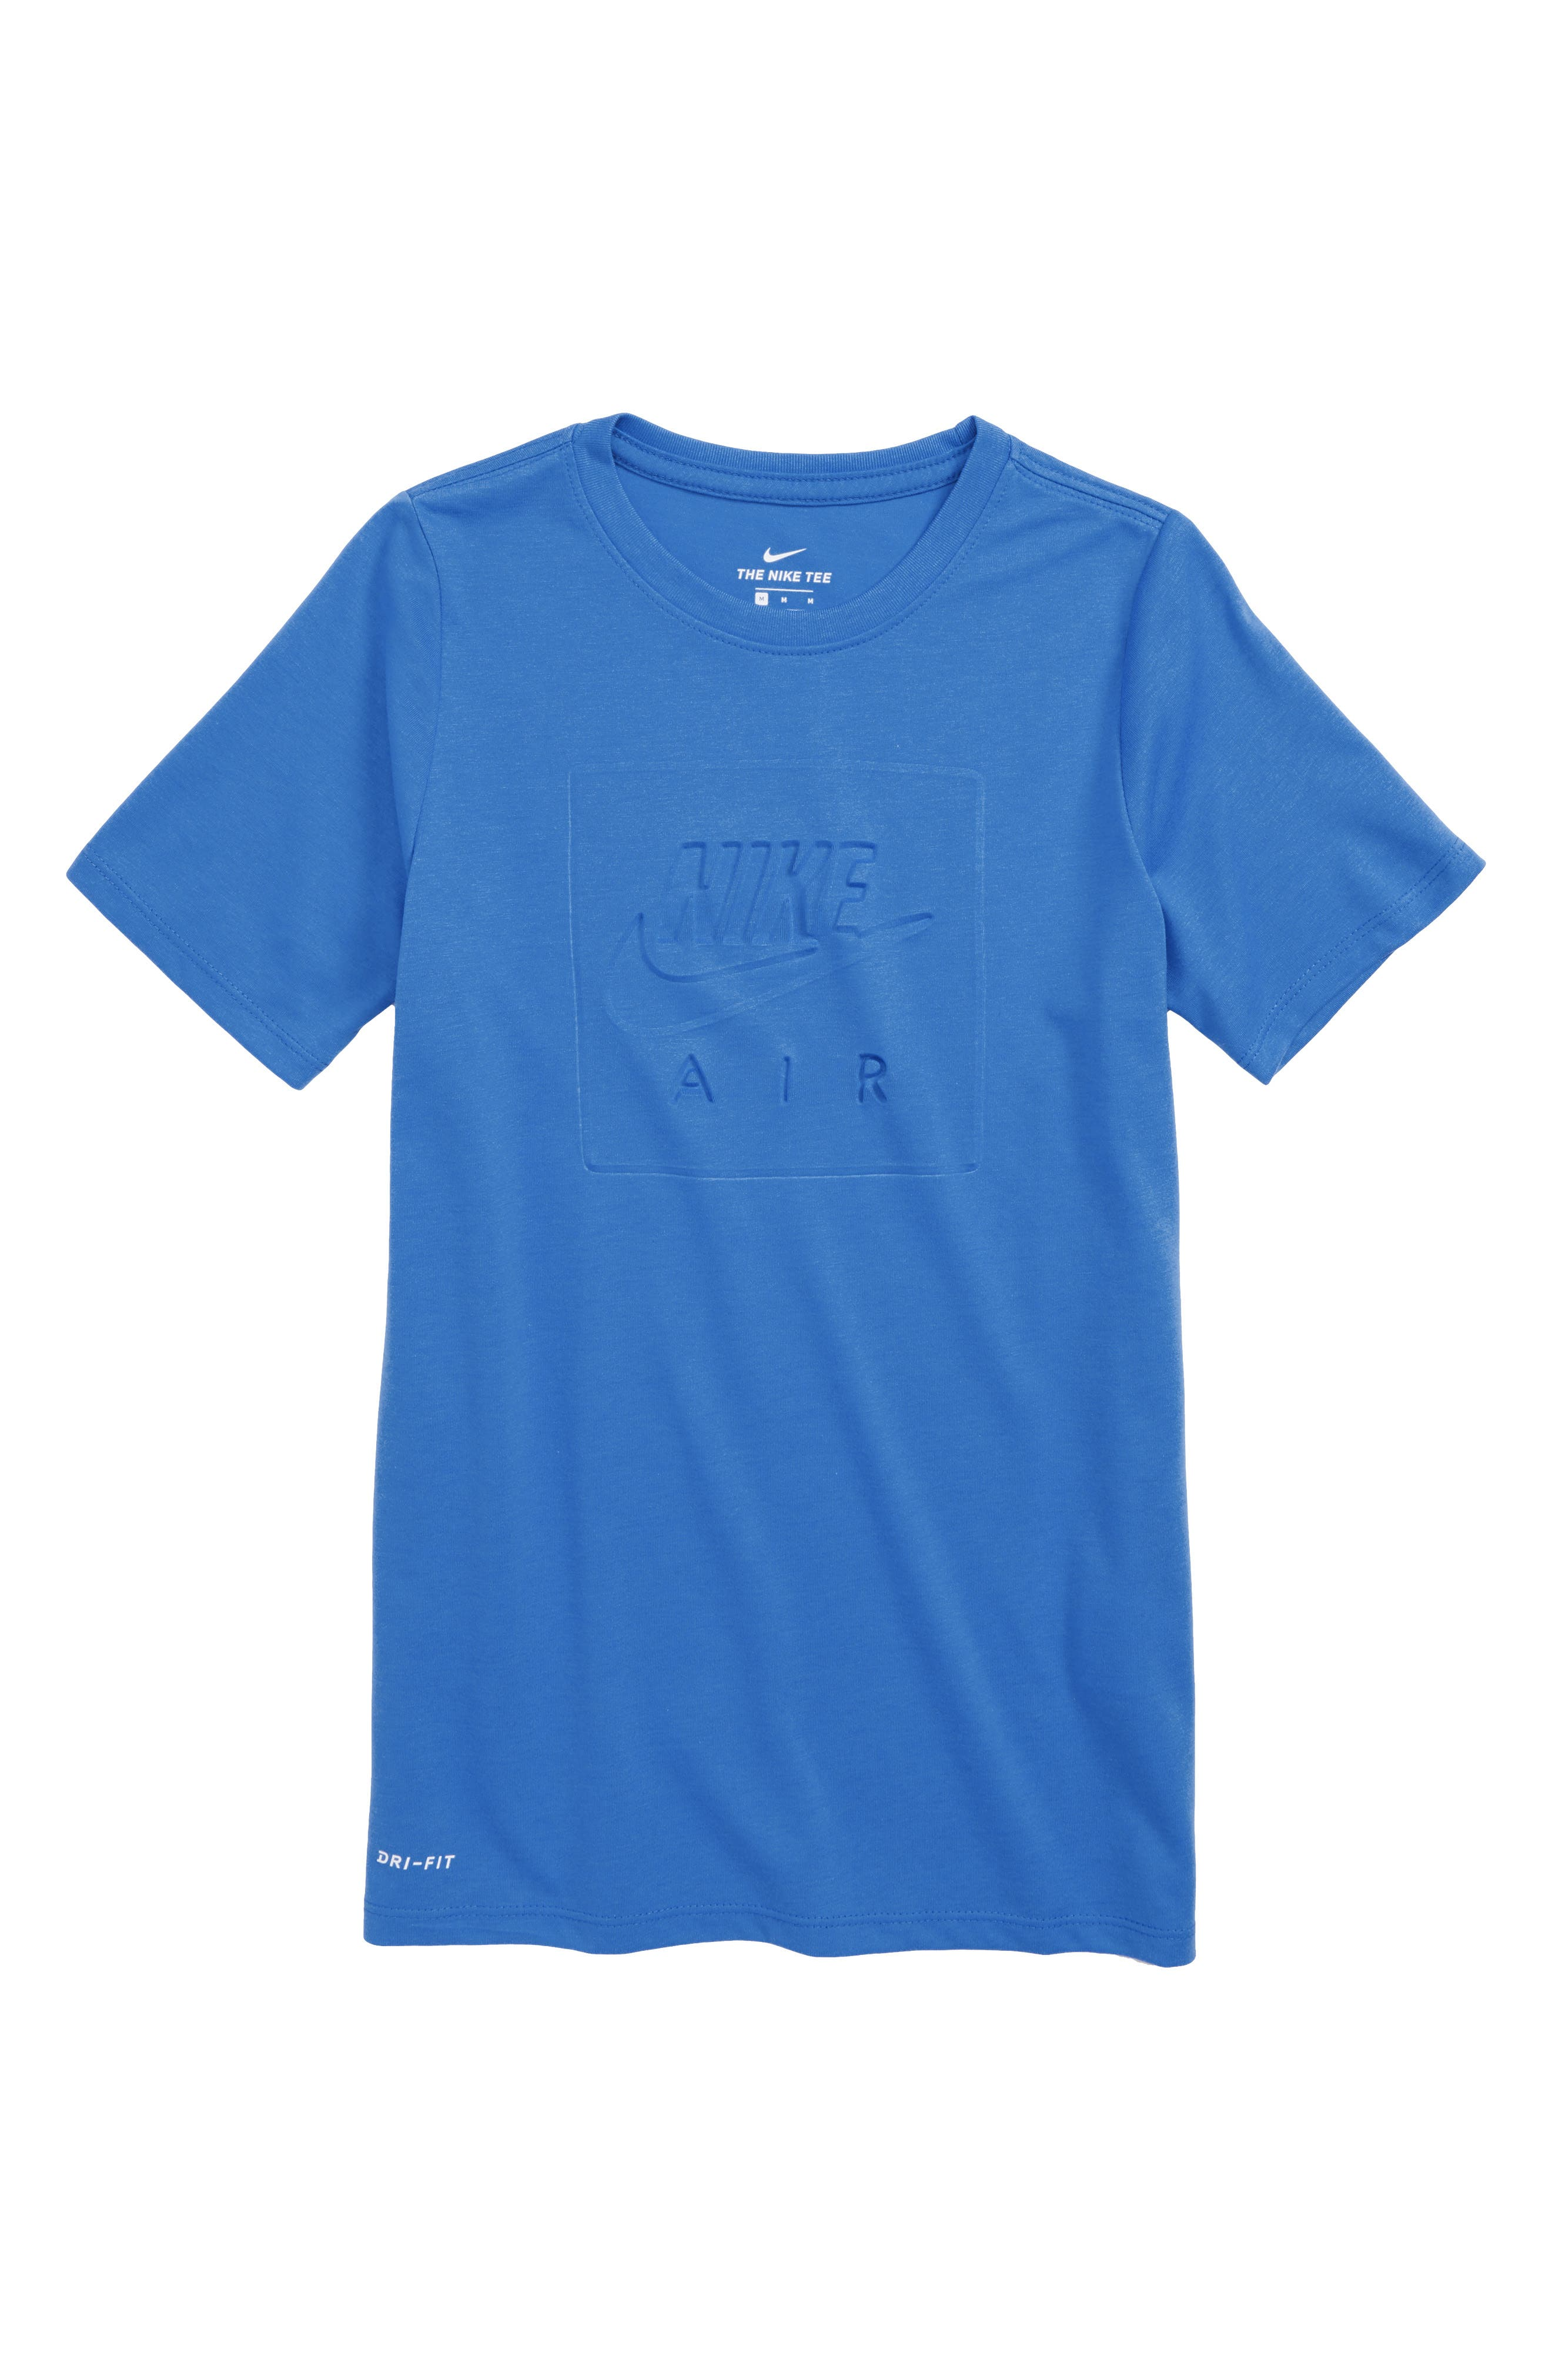 Air Logo T-Shirt,                             Main thumbnail 1, color,                             SIGNAL BLUE